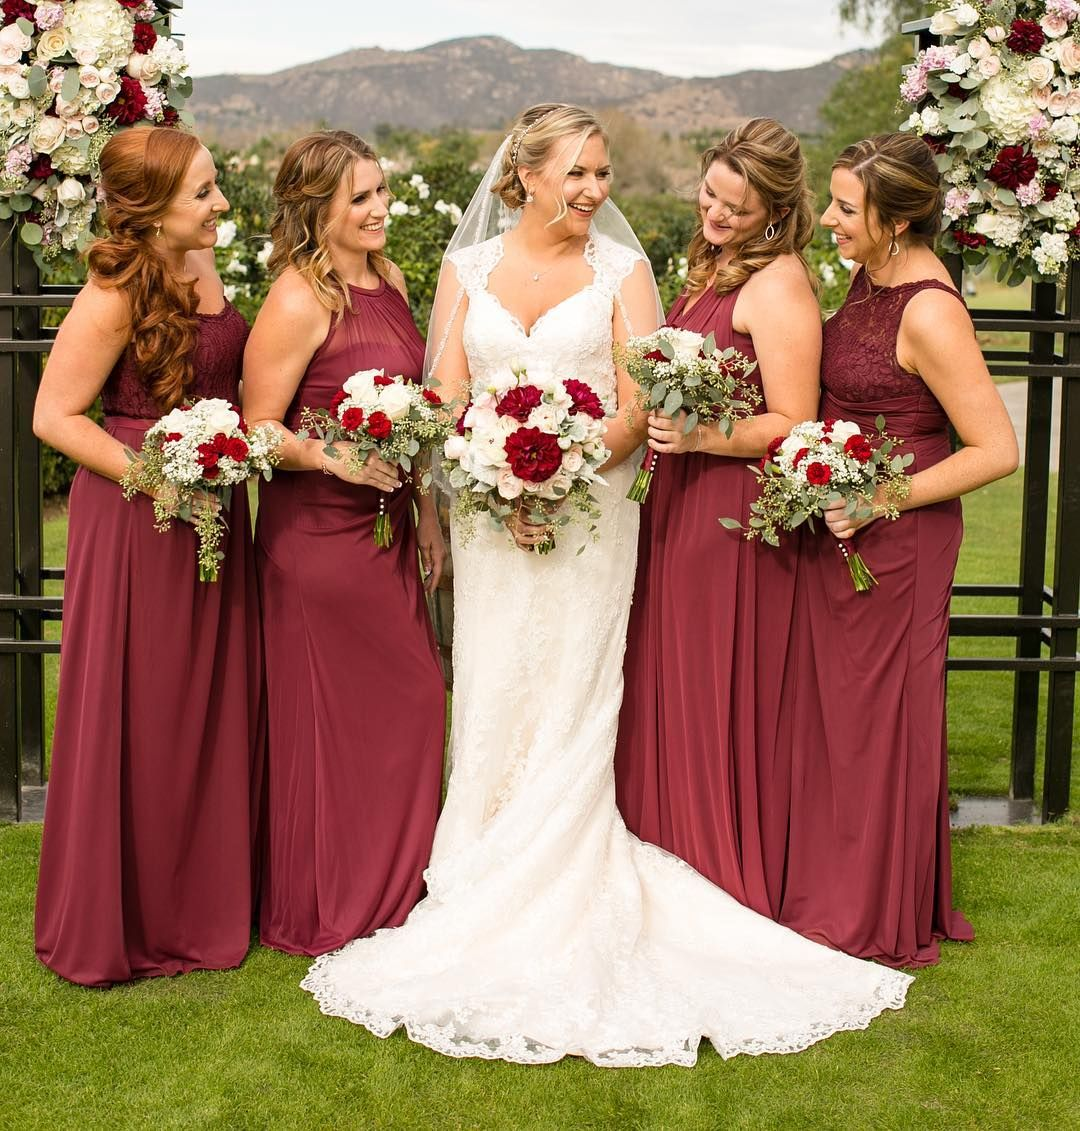 Burgundy Bridesmaid Dresses From David's Bridal With